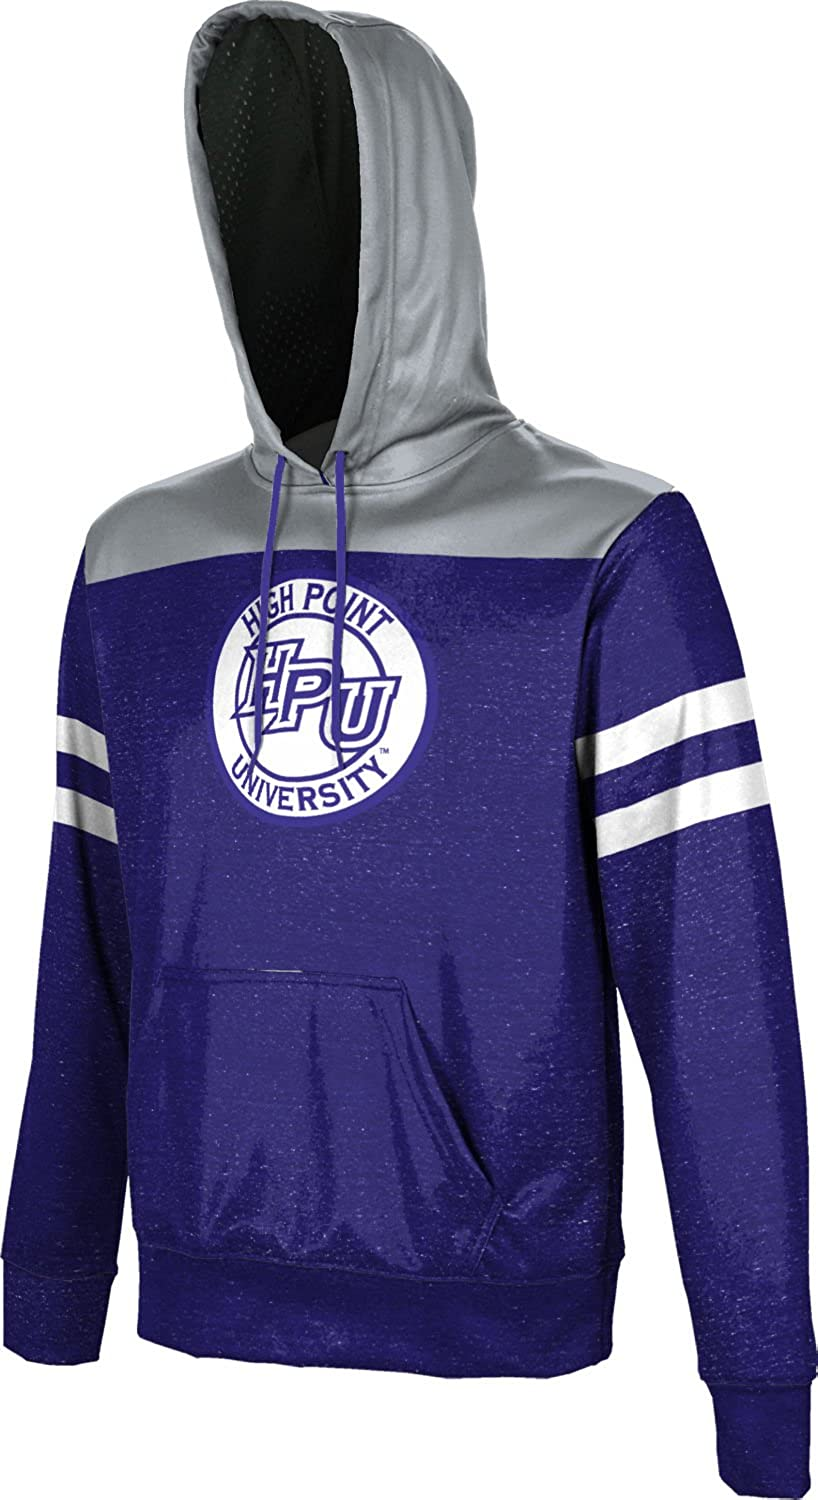 ProSphere High Point University Boys Pullover Hoodie Gameday